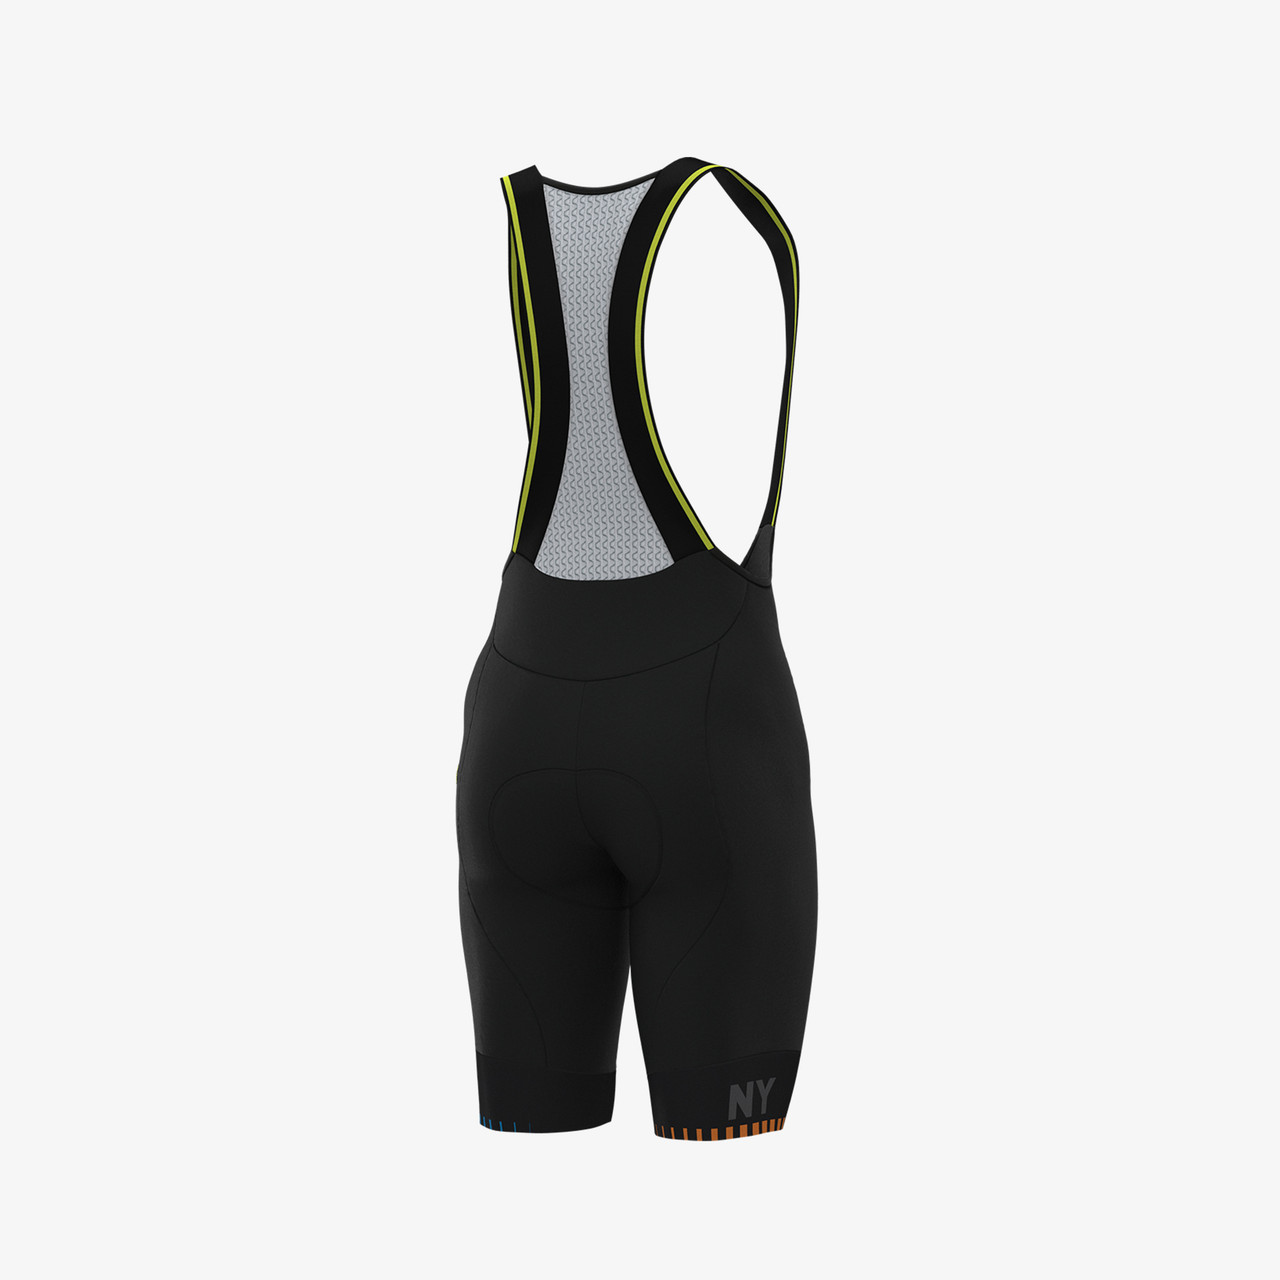 ALE' New York Edition Bib Shorts